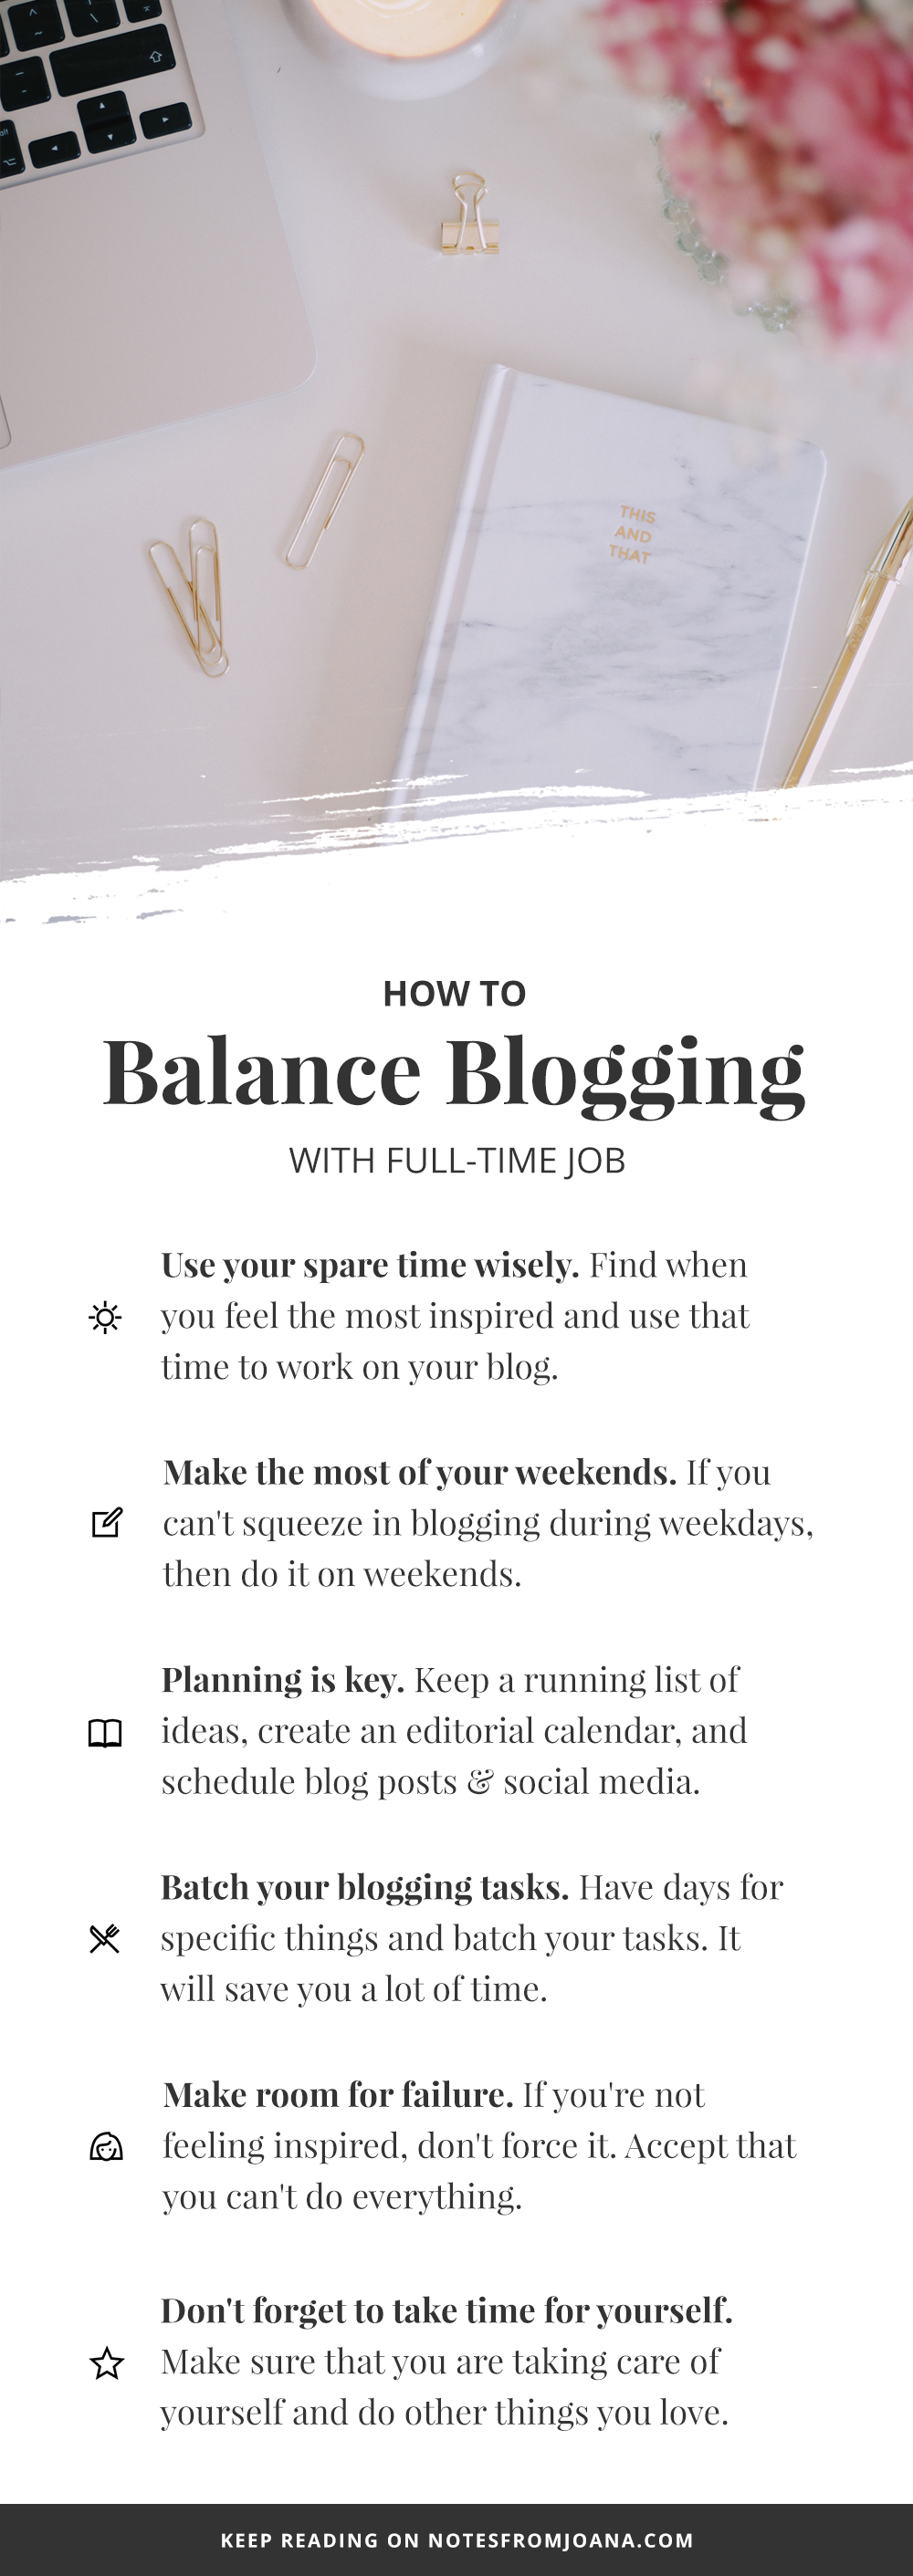 How to balance blogging with a full time job how to balance blogging with a full time job a few tips on solutioingenieria Choice Image